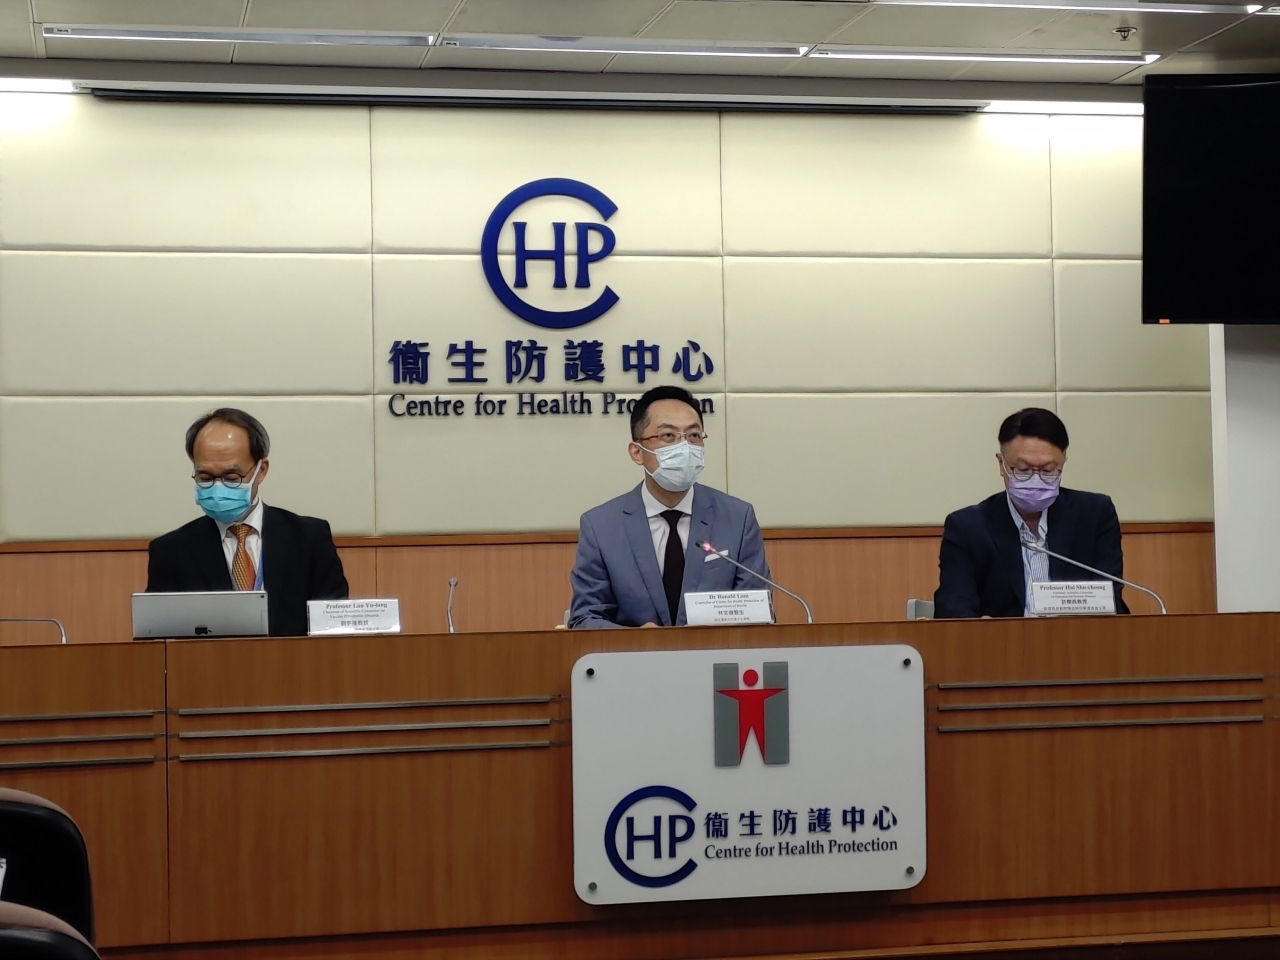 Expert advisers say the latest data shows that the BioNTech vaccine is suitable for pregnant women and nursing mothers. Photo: RTHK